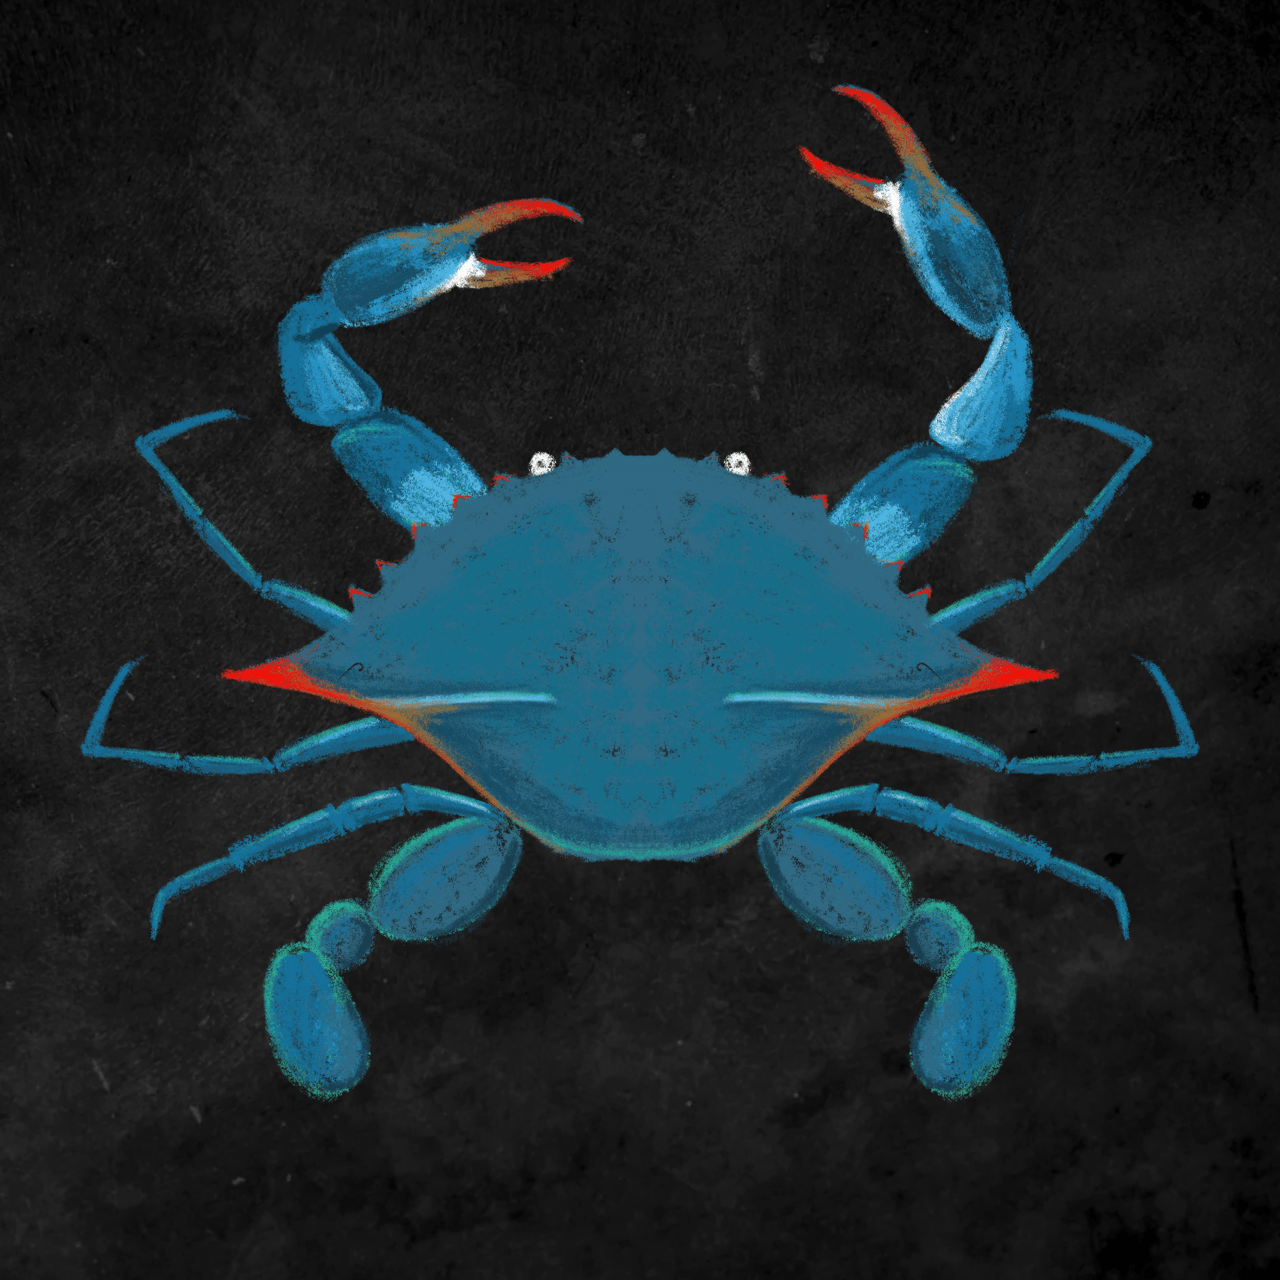 Blue crab illustrated by Ceindy Doodles